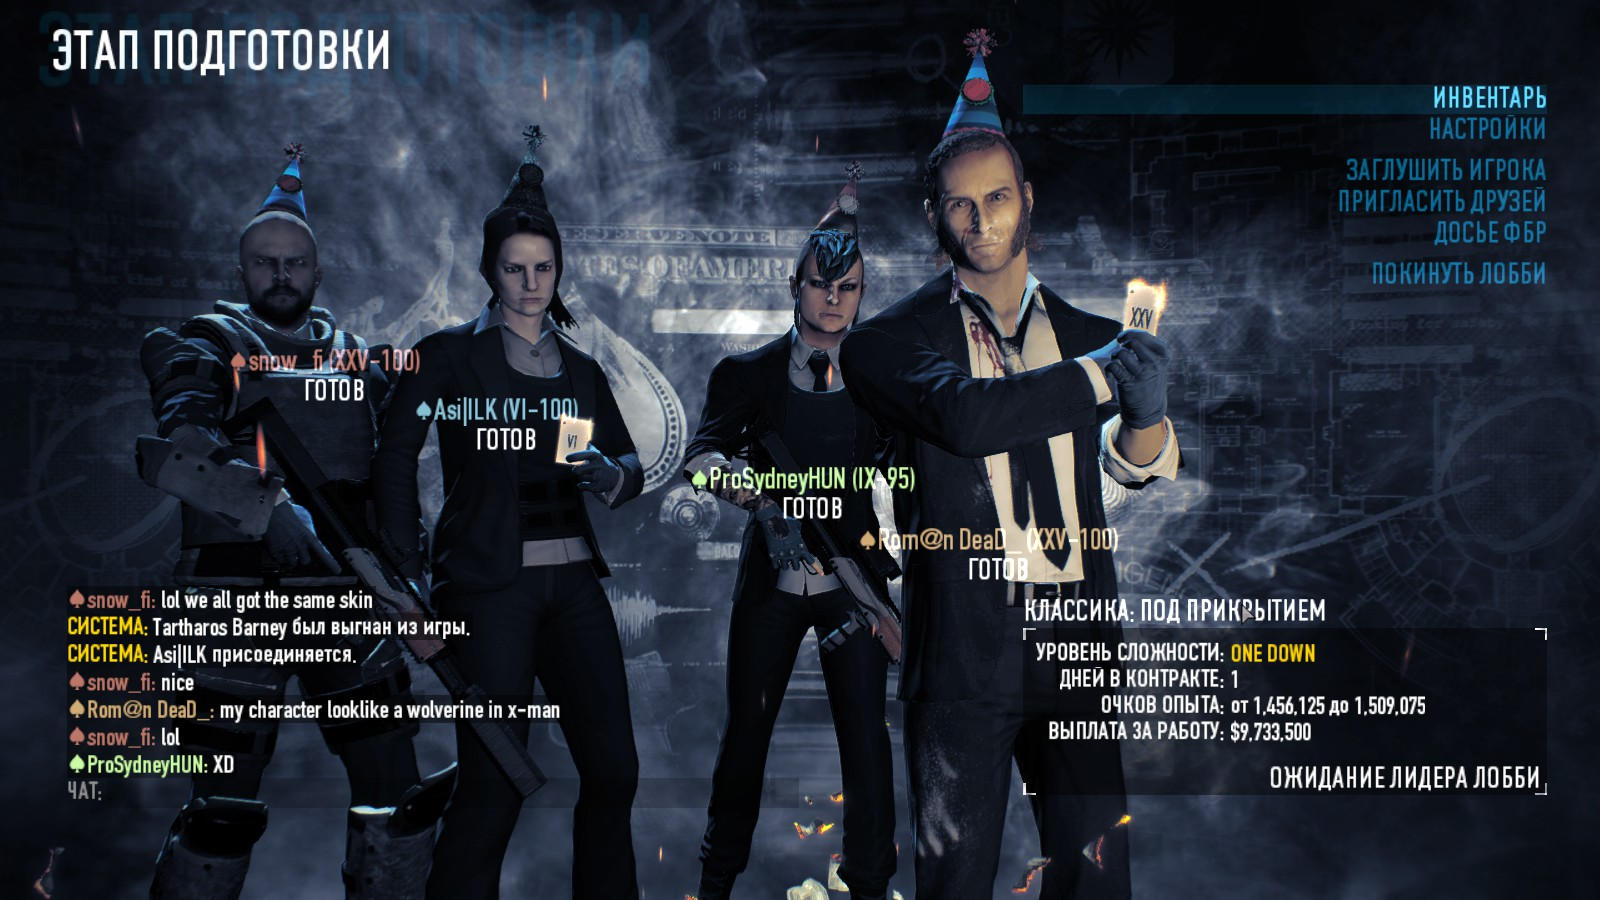 Hugh Jackman in a party on the Payday 2. - Payday 2 Кроссовер